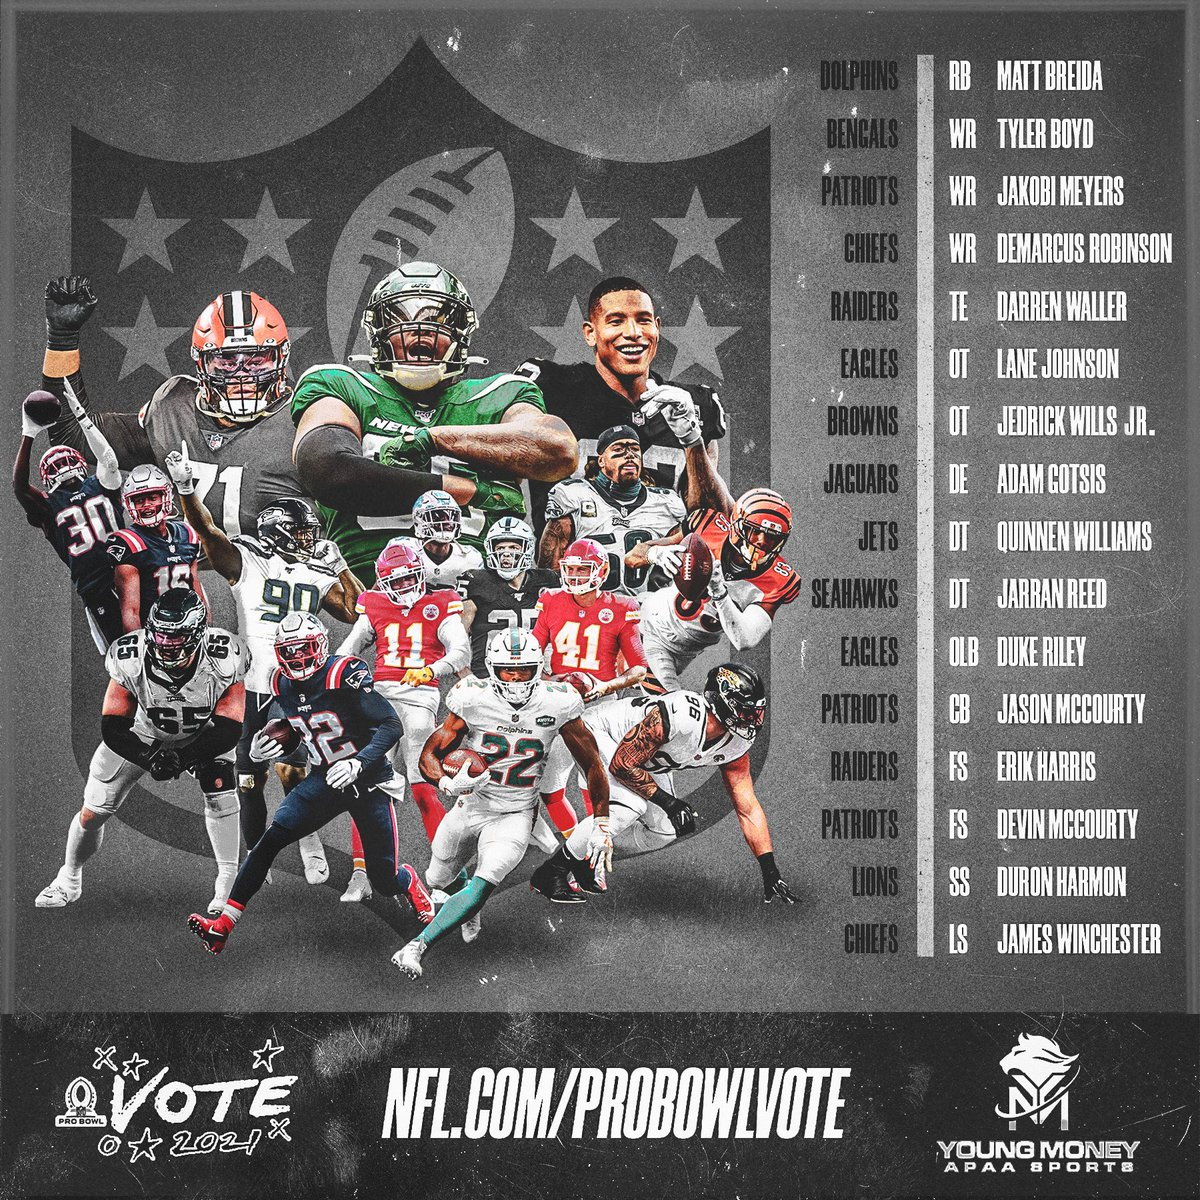 #ProBowlVote ends at midnight! Each RT counts as 2 votes:  @MattBreida  @boutdat_23  @jkbmyrs5  @Demarcus  @LaneJohnson65  @JWills73  @gotsis96  @QuinnenWilliams  @jarranreed  @1Goal1Dream  @McCourtyTwins  @e_harris_31  @dharm32  Darren Waller James Winchester   #YMAPAA